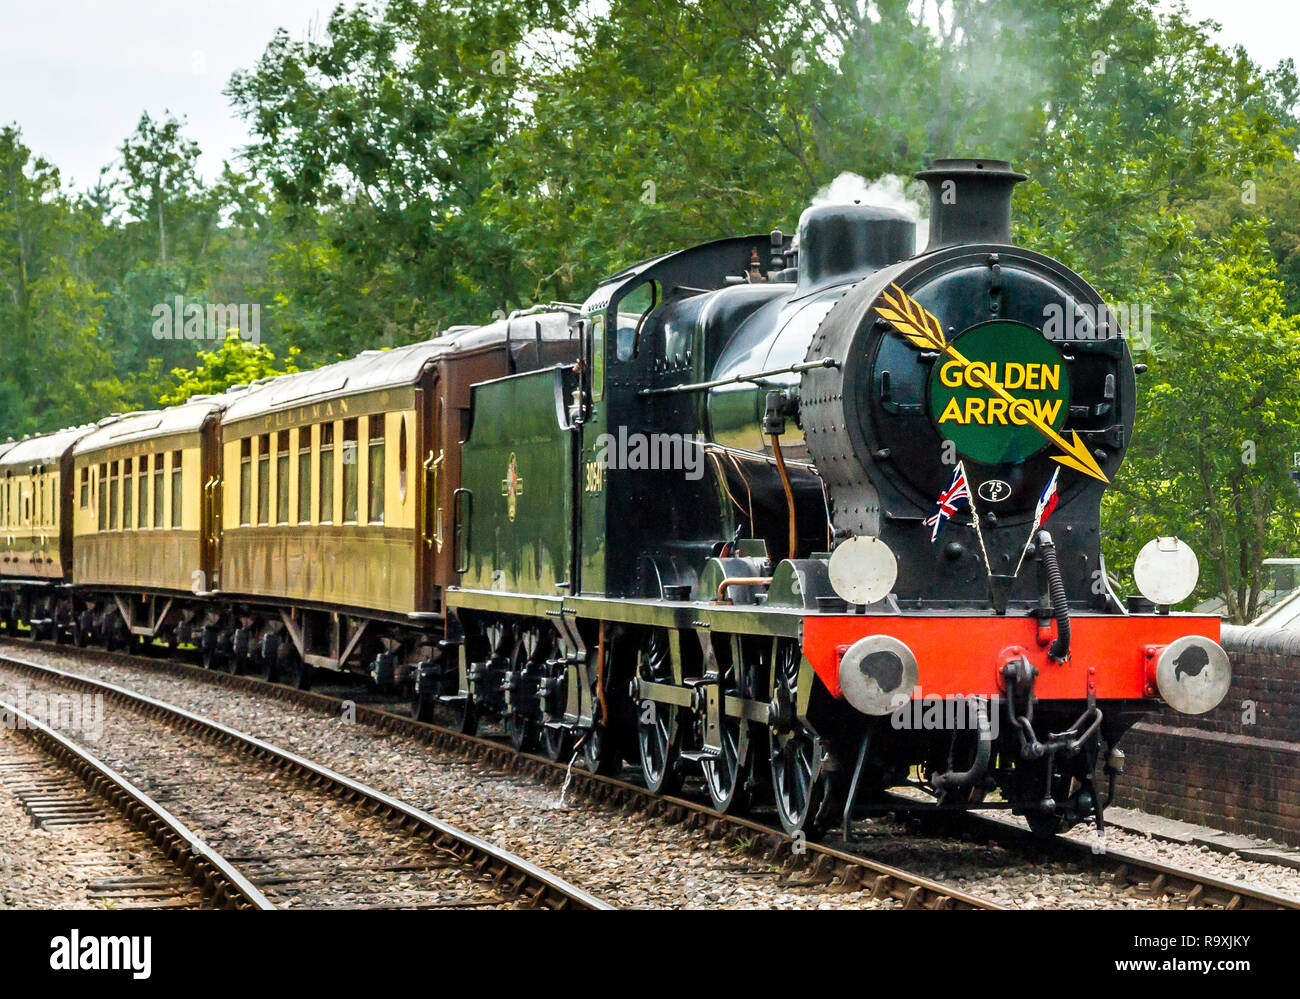 British Railways 30541 on Golden Arrow duty on the Bluebell Line - Stock Image